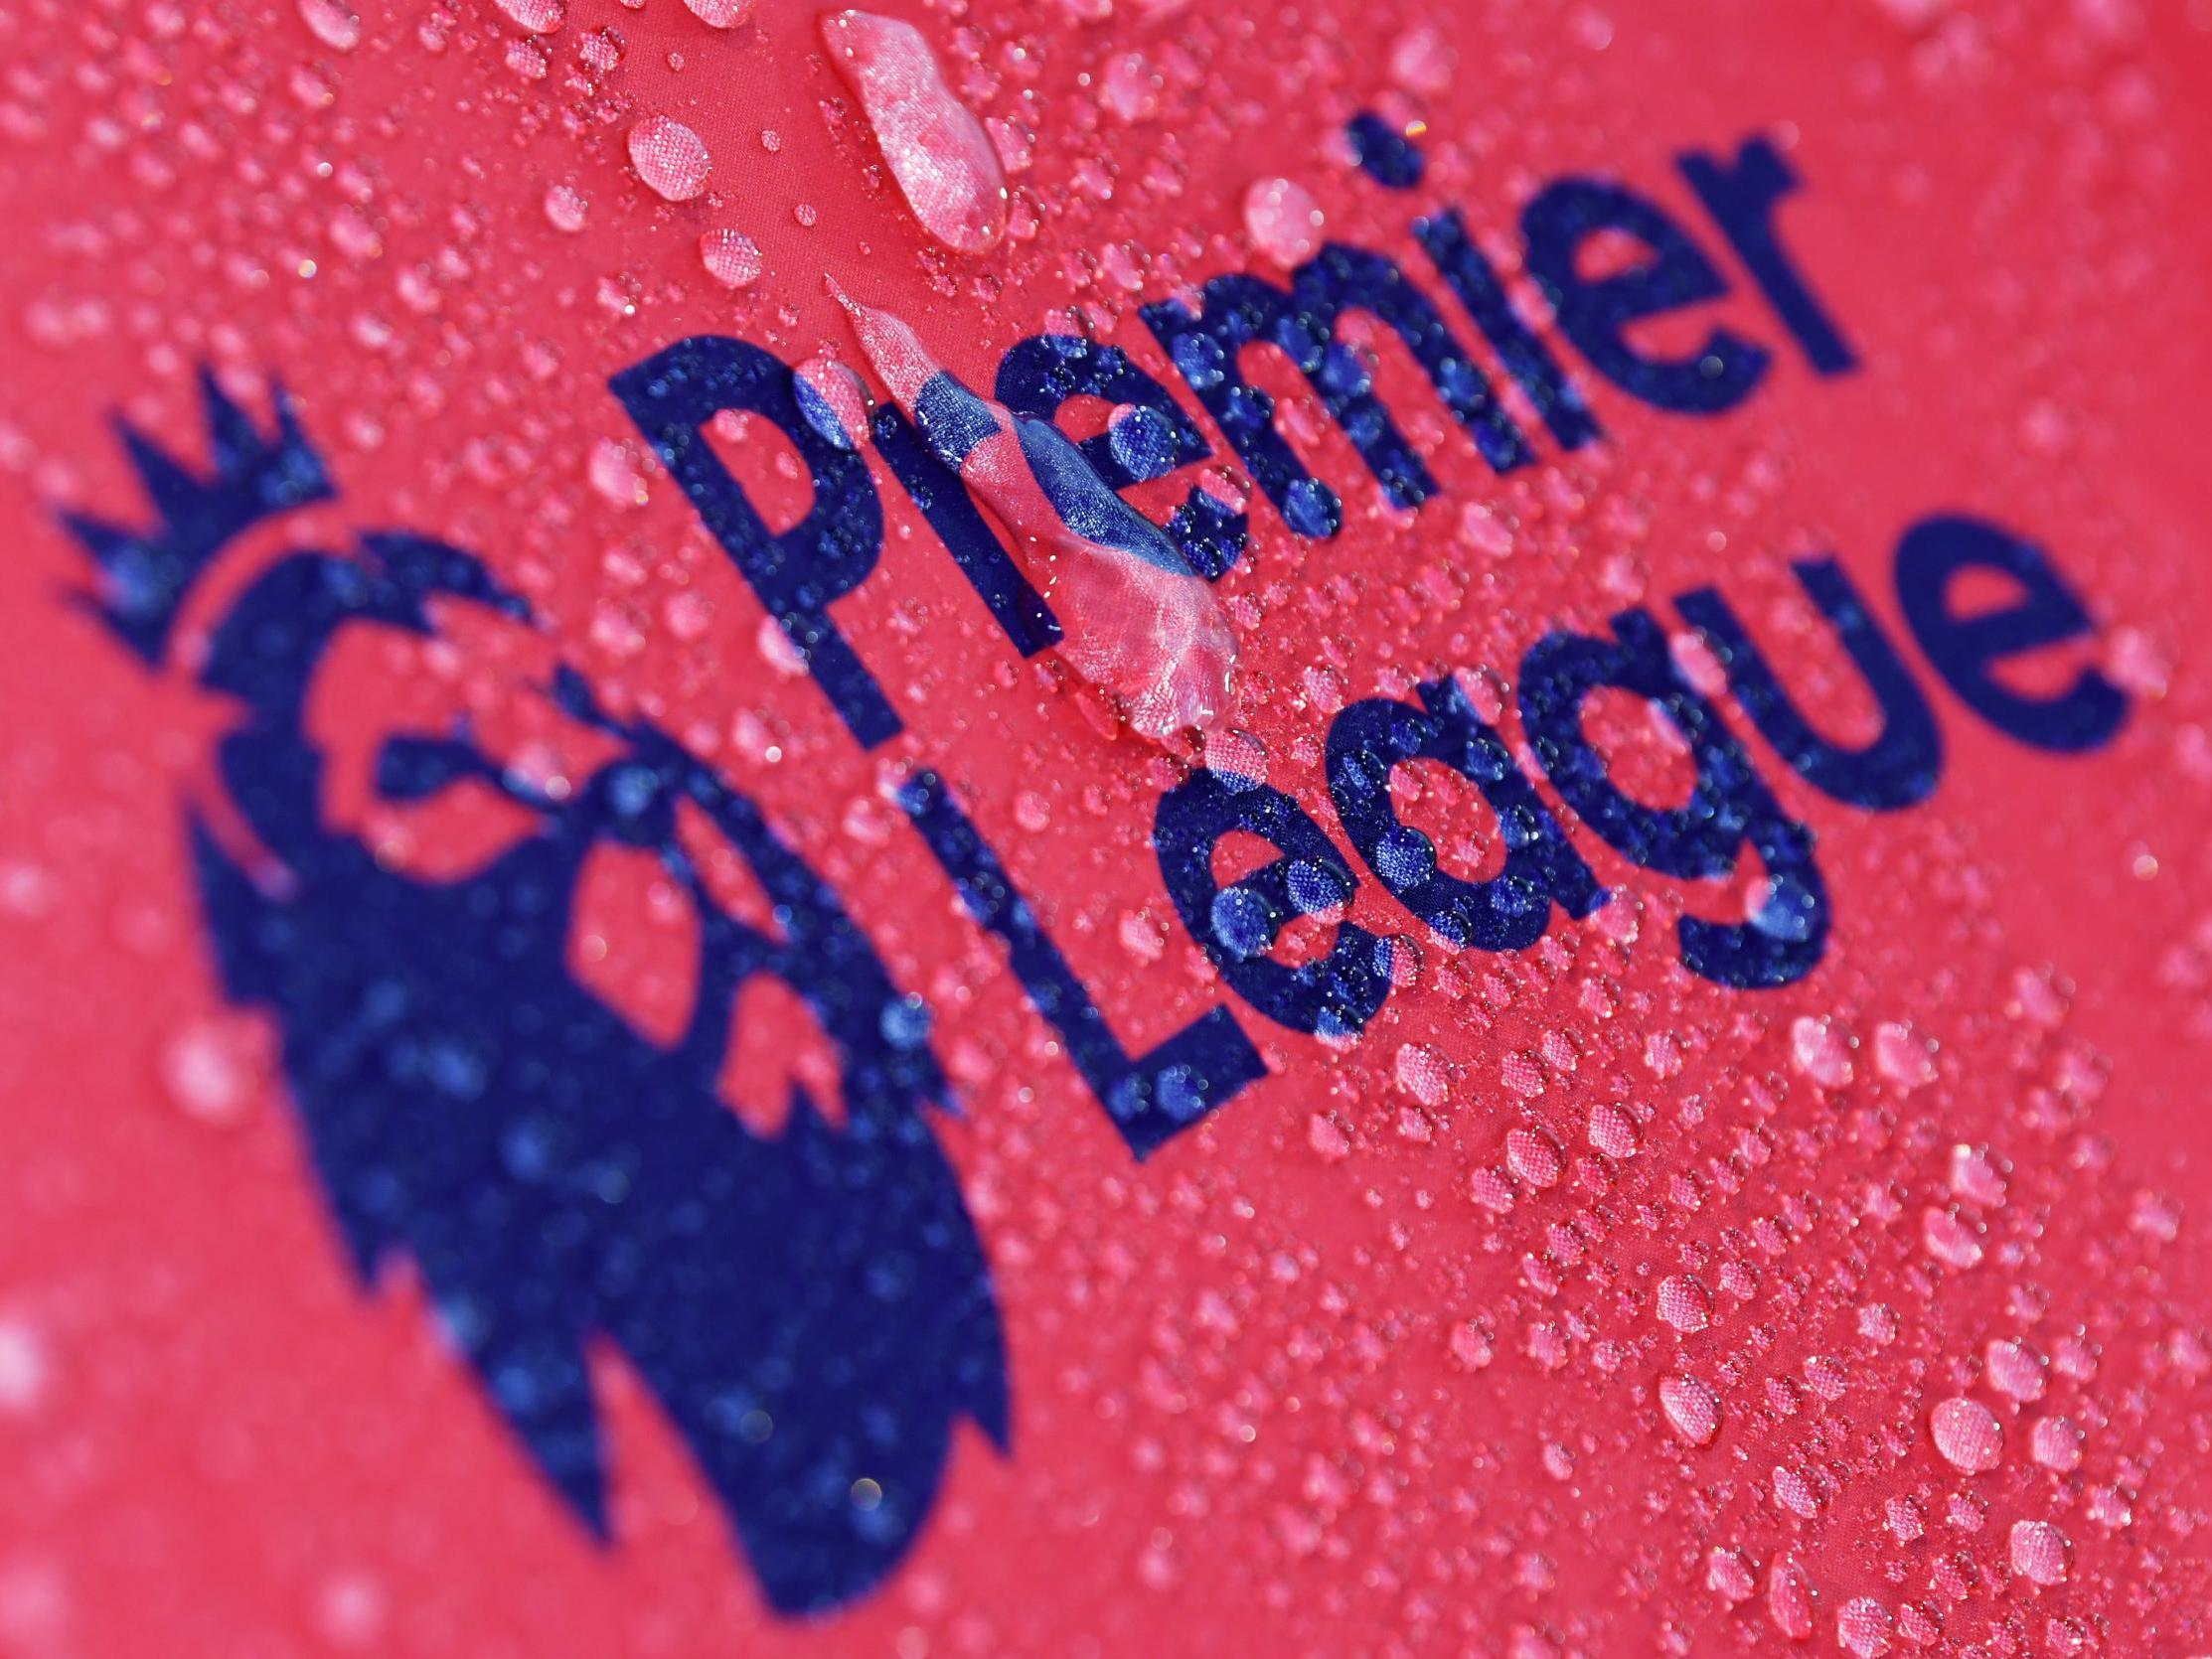 Enjoy the Premier League while it lasts - the landscape of